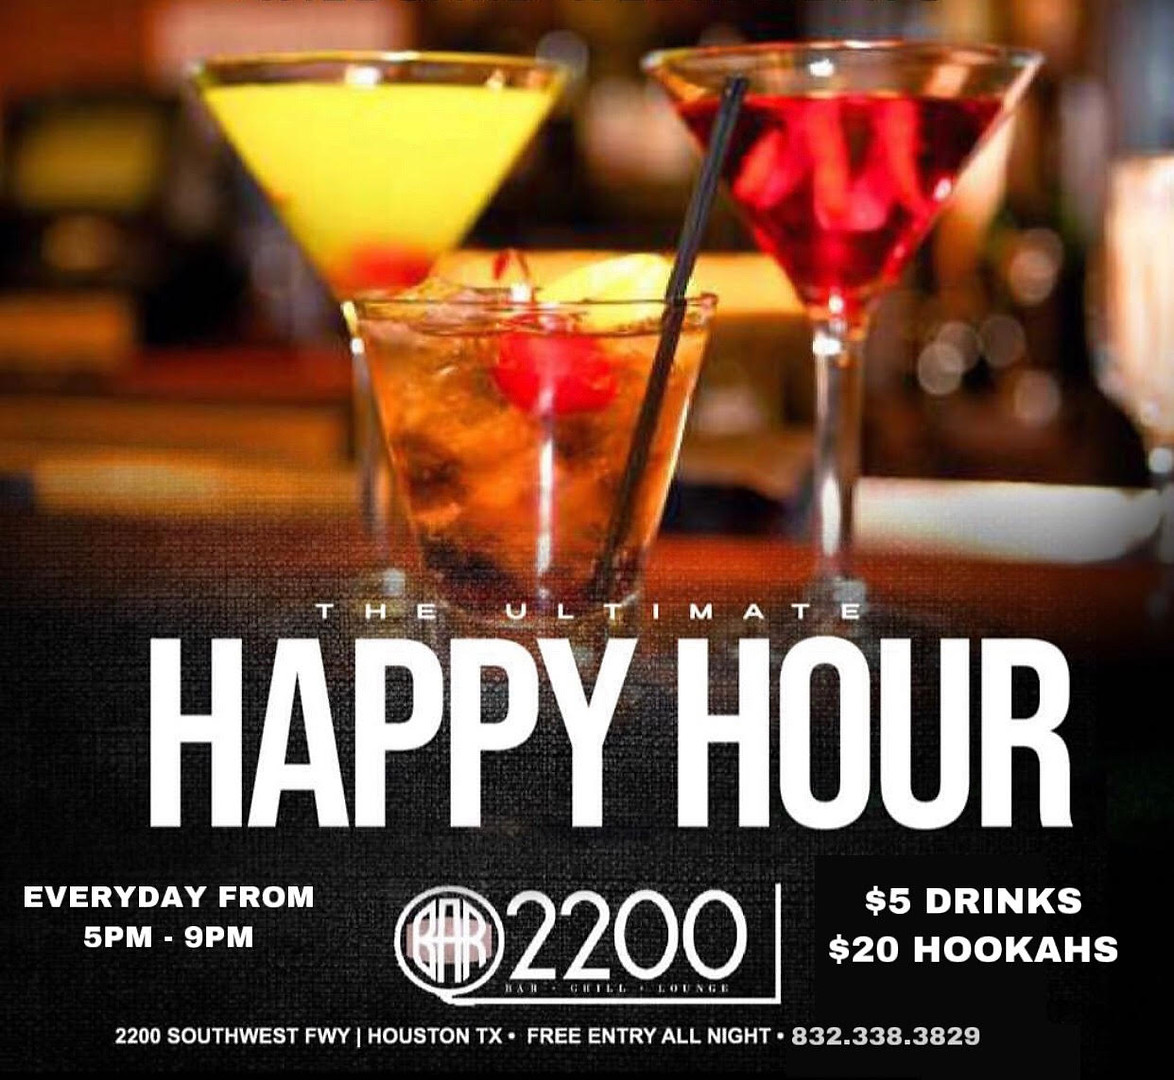 The Ultimate Happy Hour